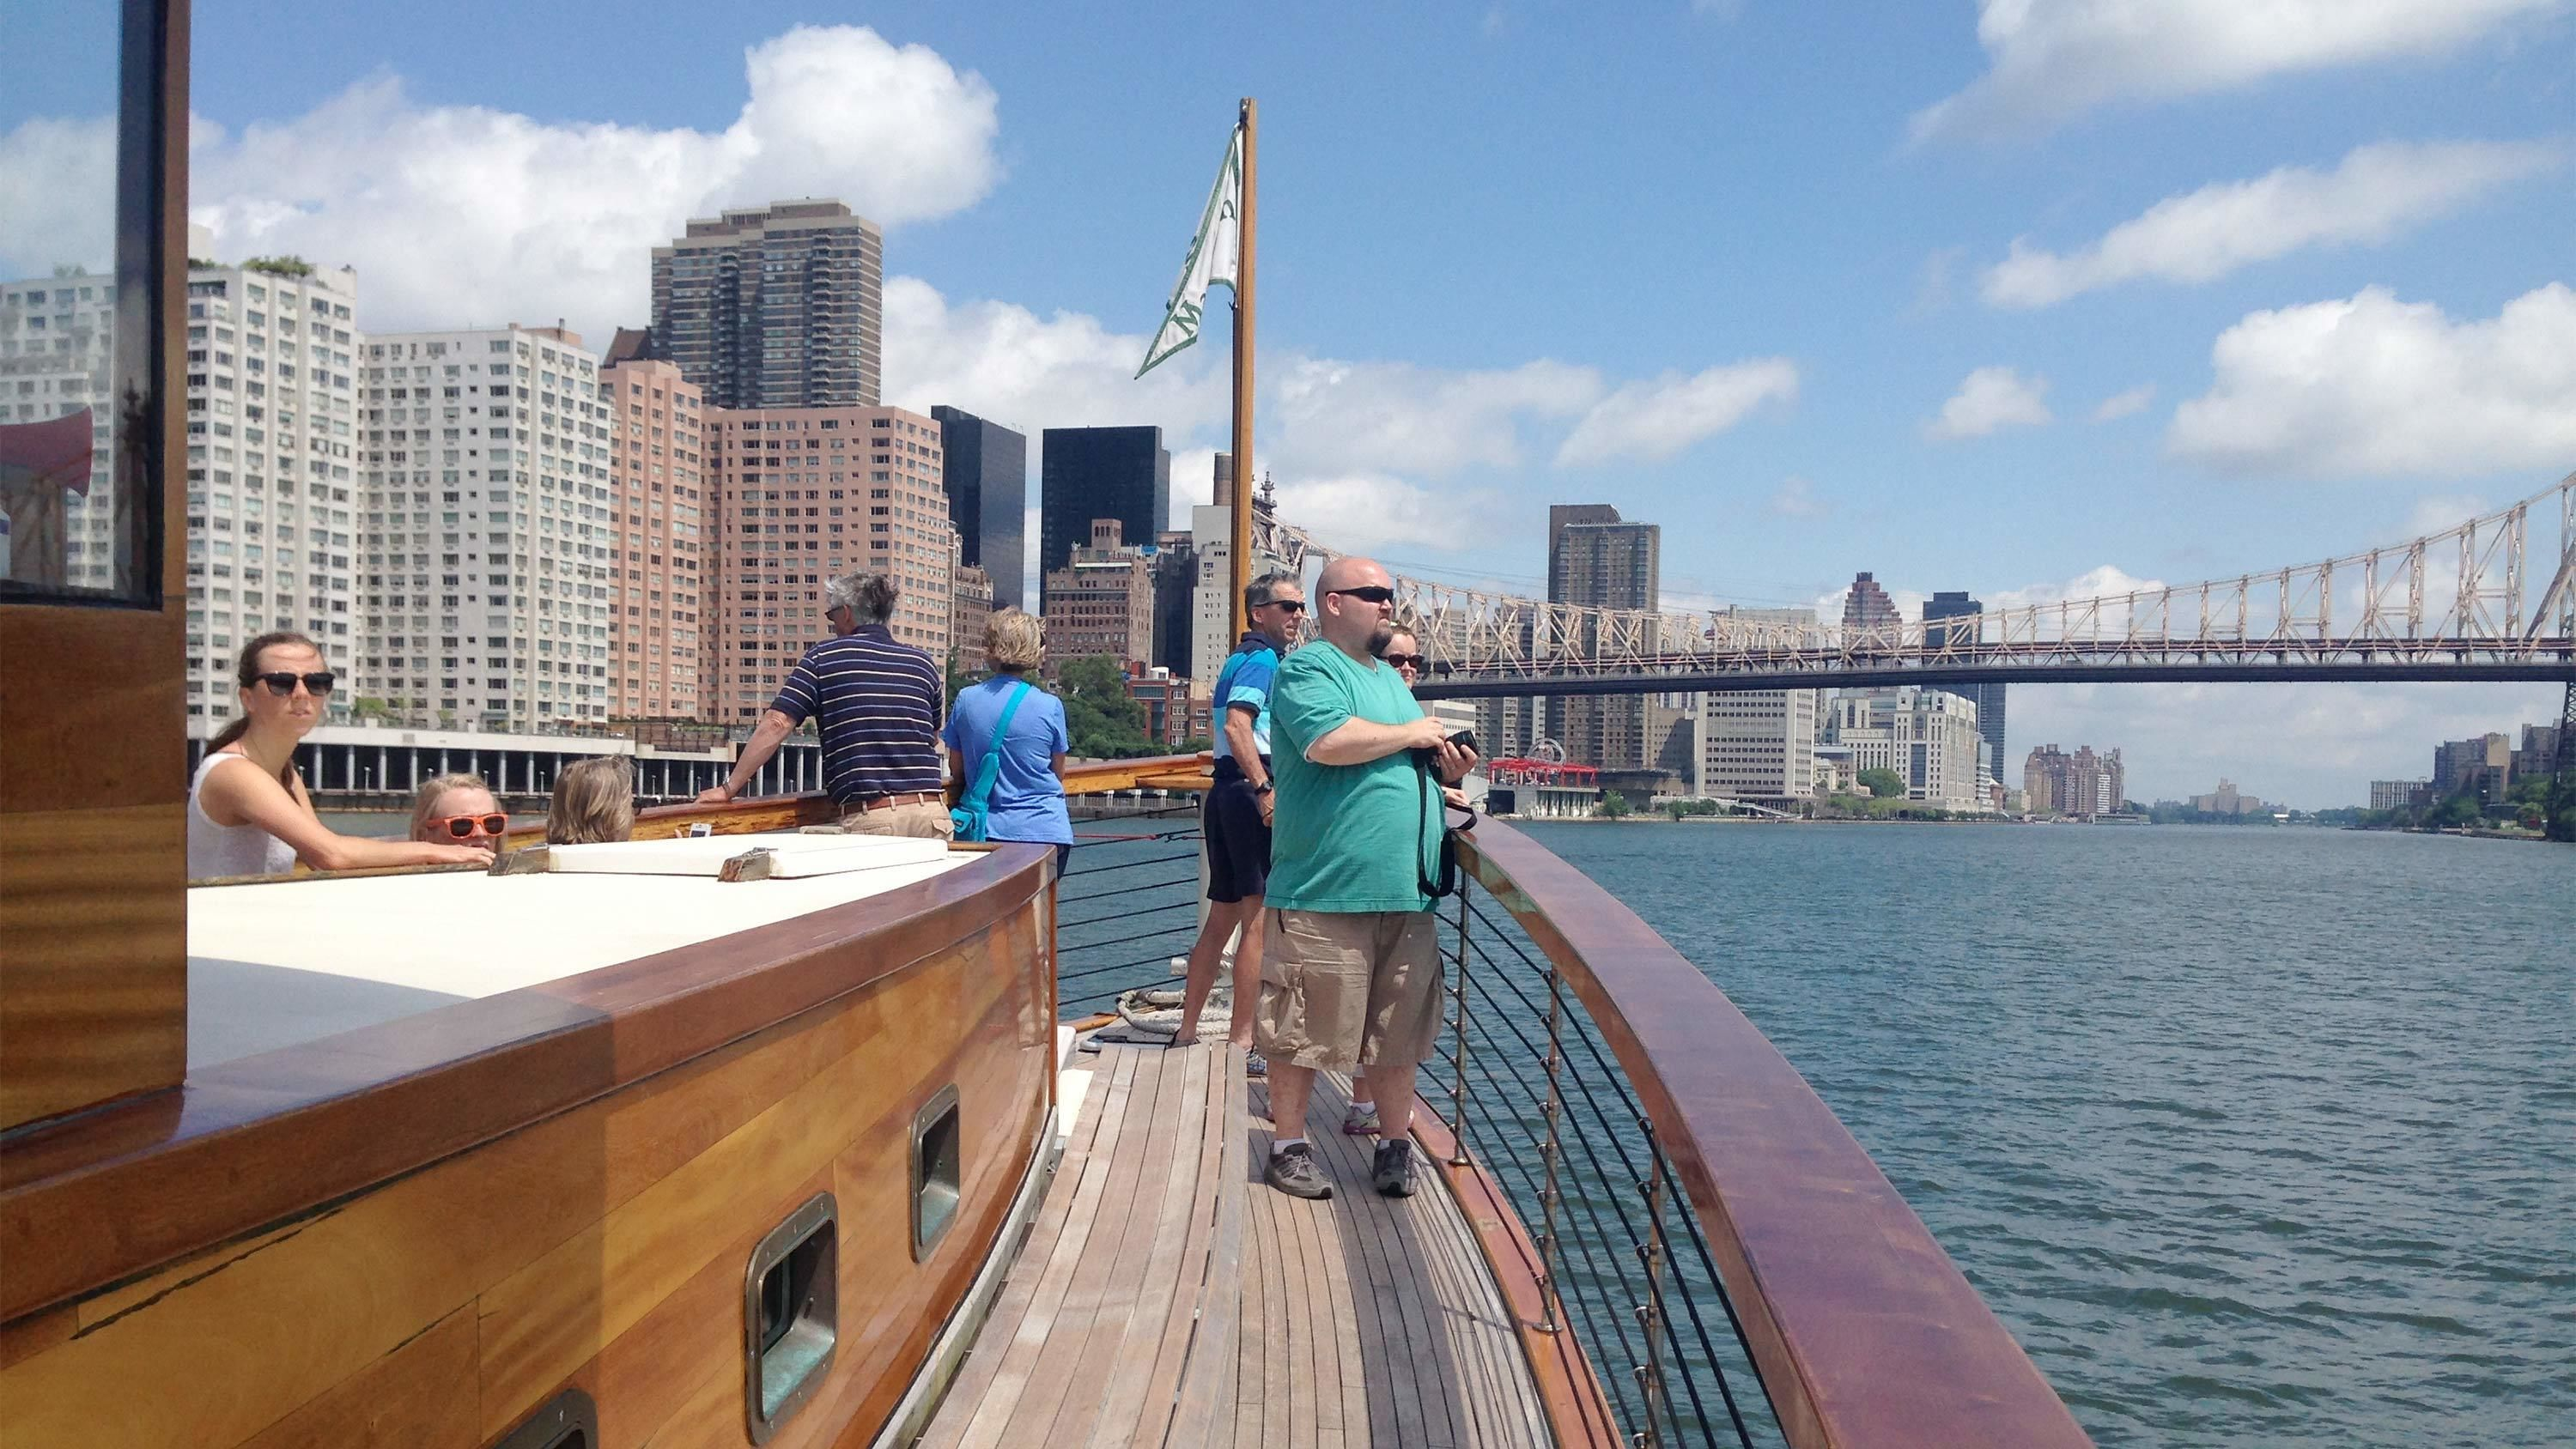 Guests aboard the scenic Manhattan cruise